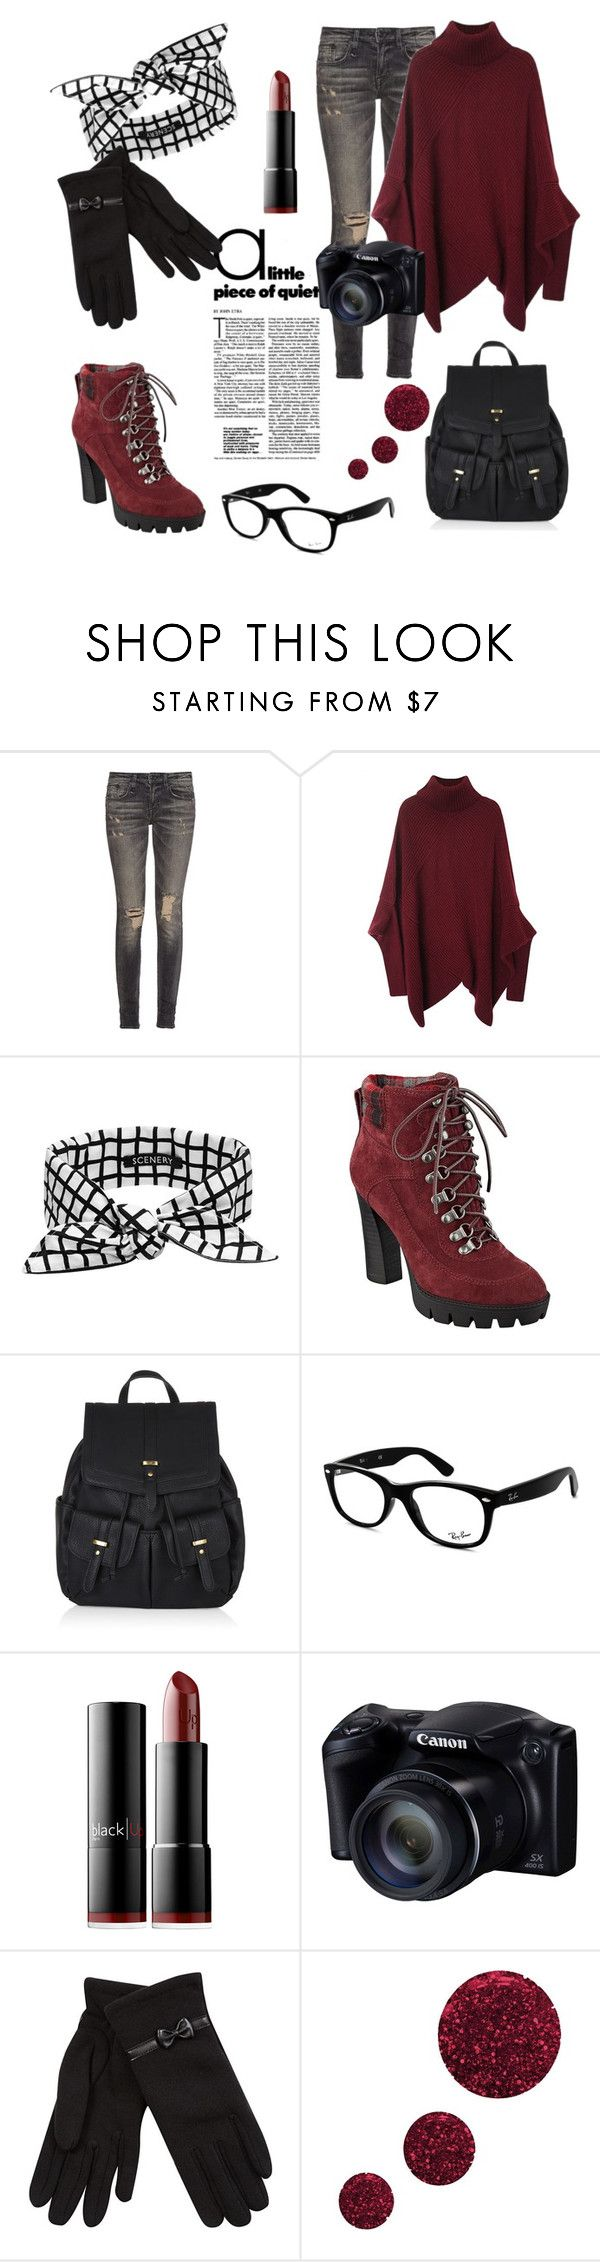 """""""hottie tottie"""" by mookix ❤ liked on Polyvore featuring moda, R13, SCENERY, Nine West, Accessorize, Ray-Ban, blacklUp, Isotoner y Topshop"""